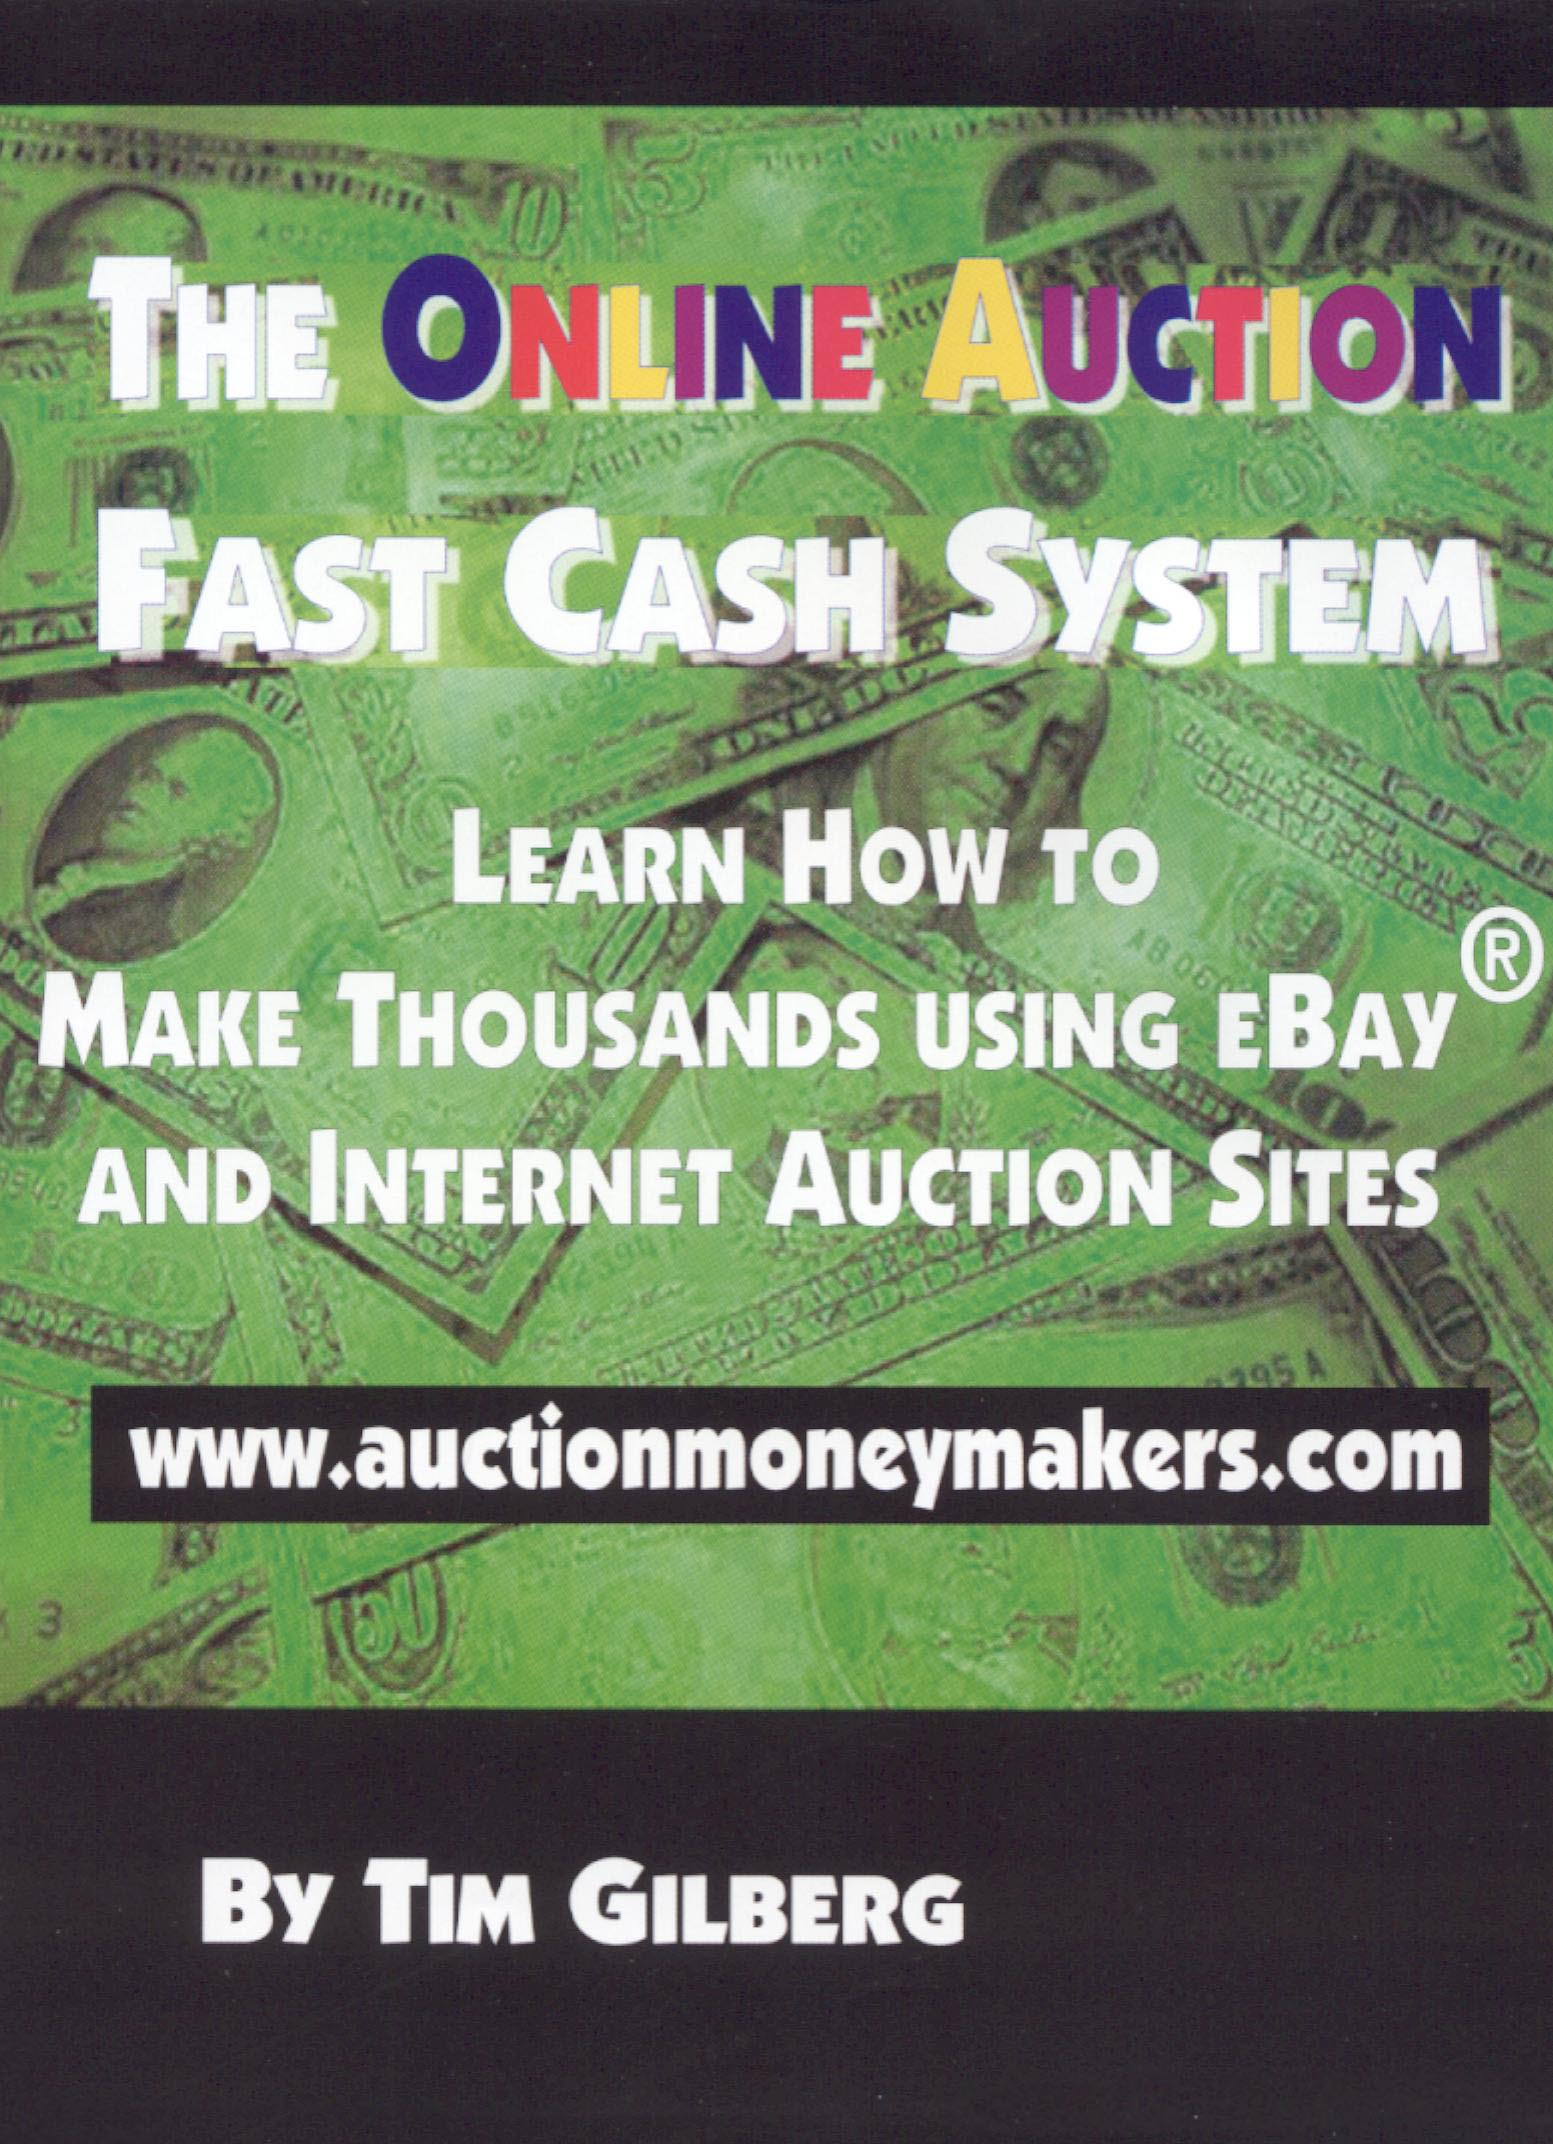 The Online Auction Fast Cash System